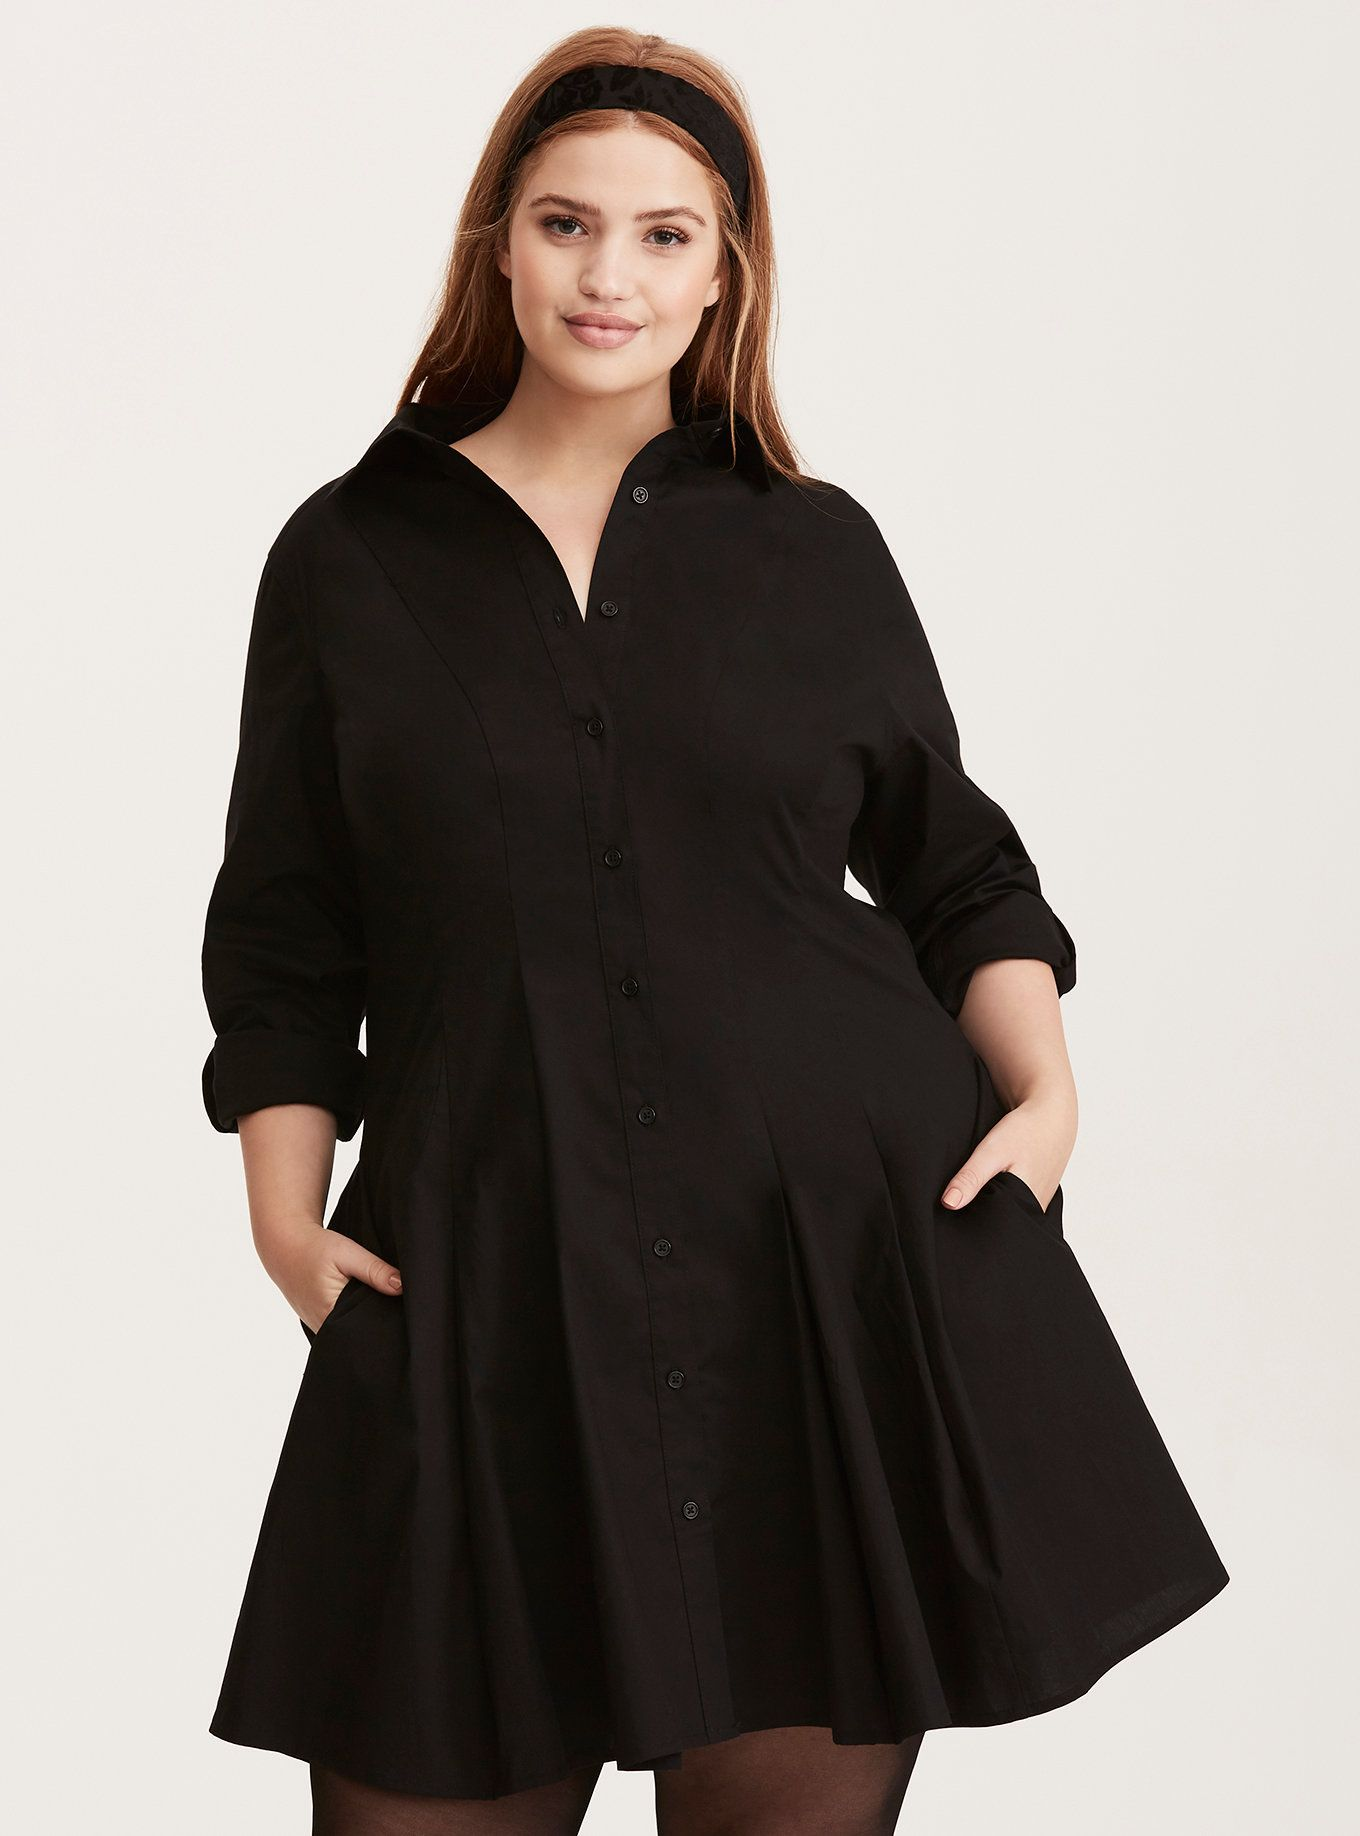 2e7d1e8145a A dress with the androgynous appeal your closet has been missing. The crisp  poplin is work shirt-inspired  fluted detailing along the skirt lends a  feminine ...